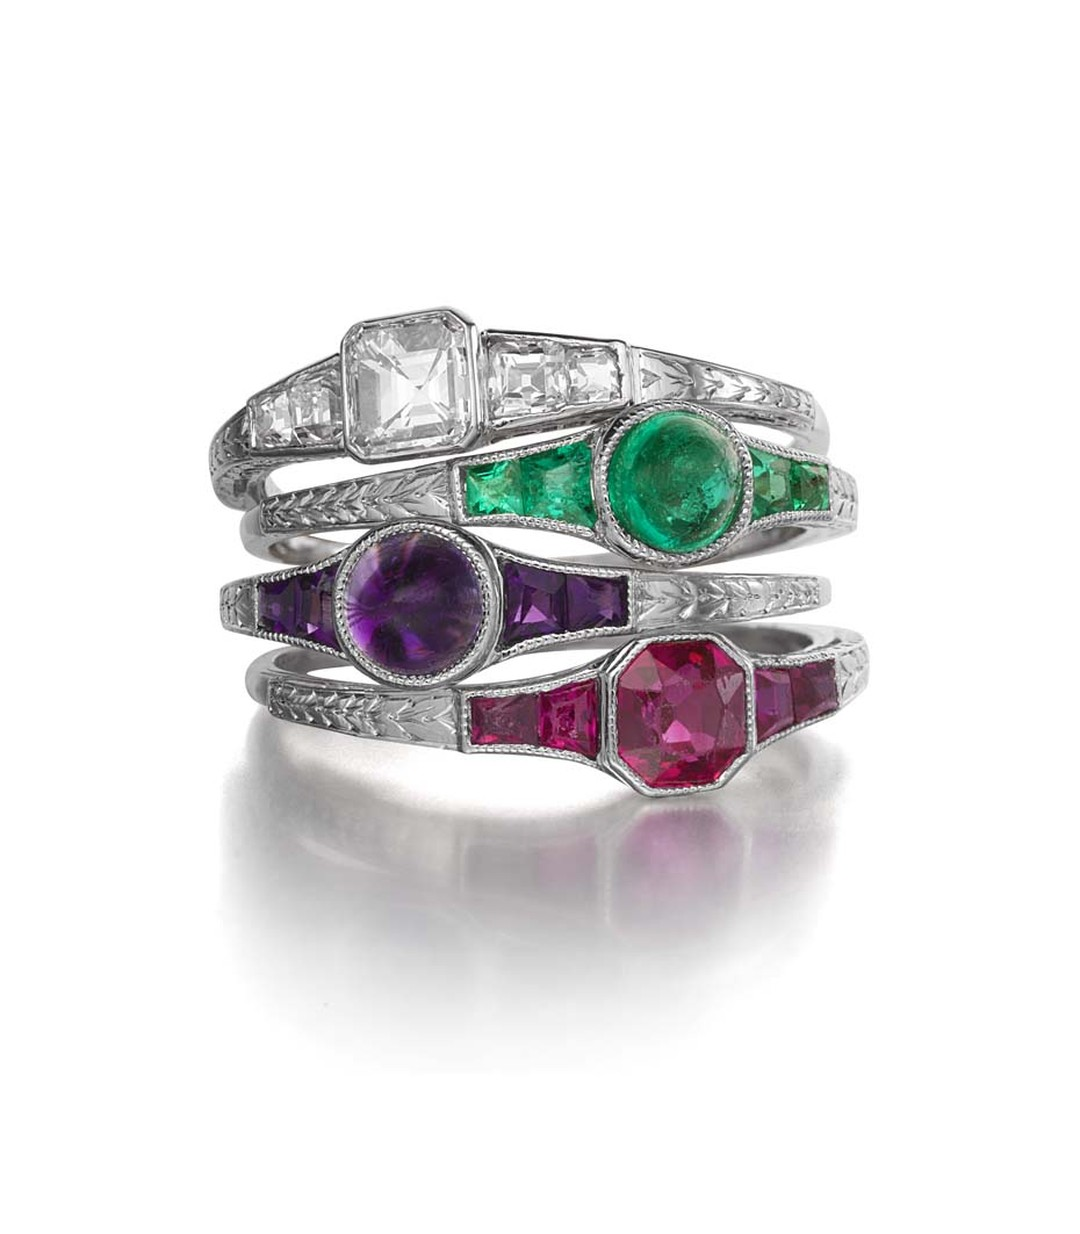 Theodore B Starr's 1920s acrostic stacking rings featuring either a square-cut diamond, a cabochon emerald, a cabochon amethyst or a cushion-cut ruby, to be exhibited by Siegelson at Masterpiece London.